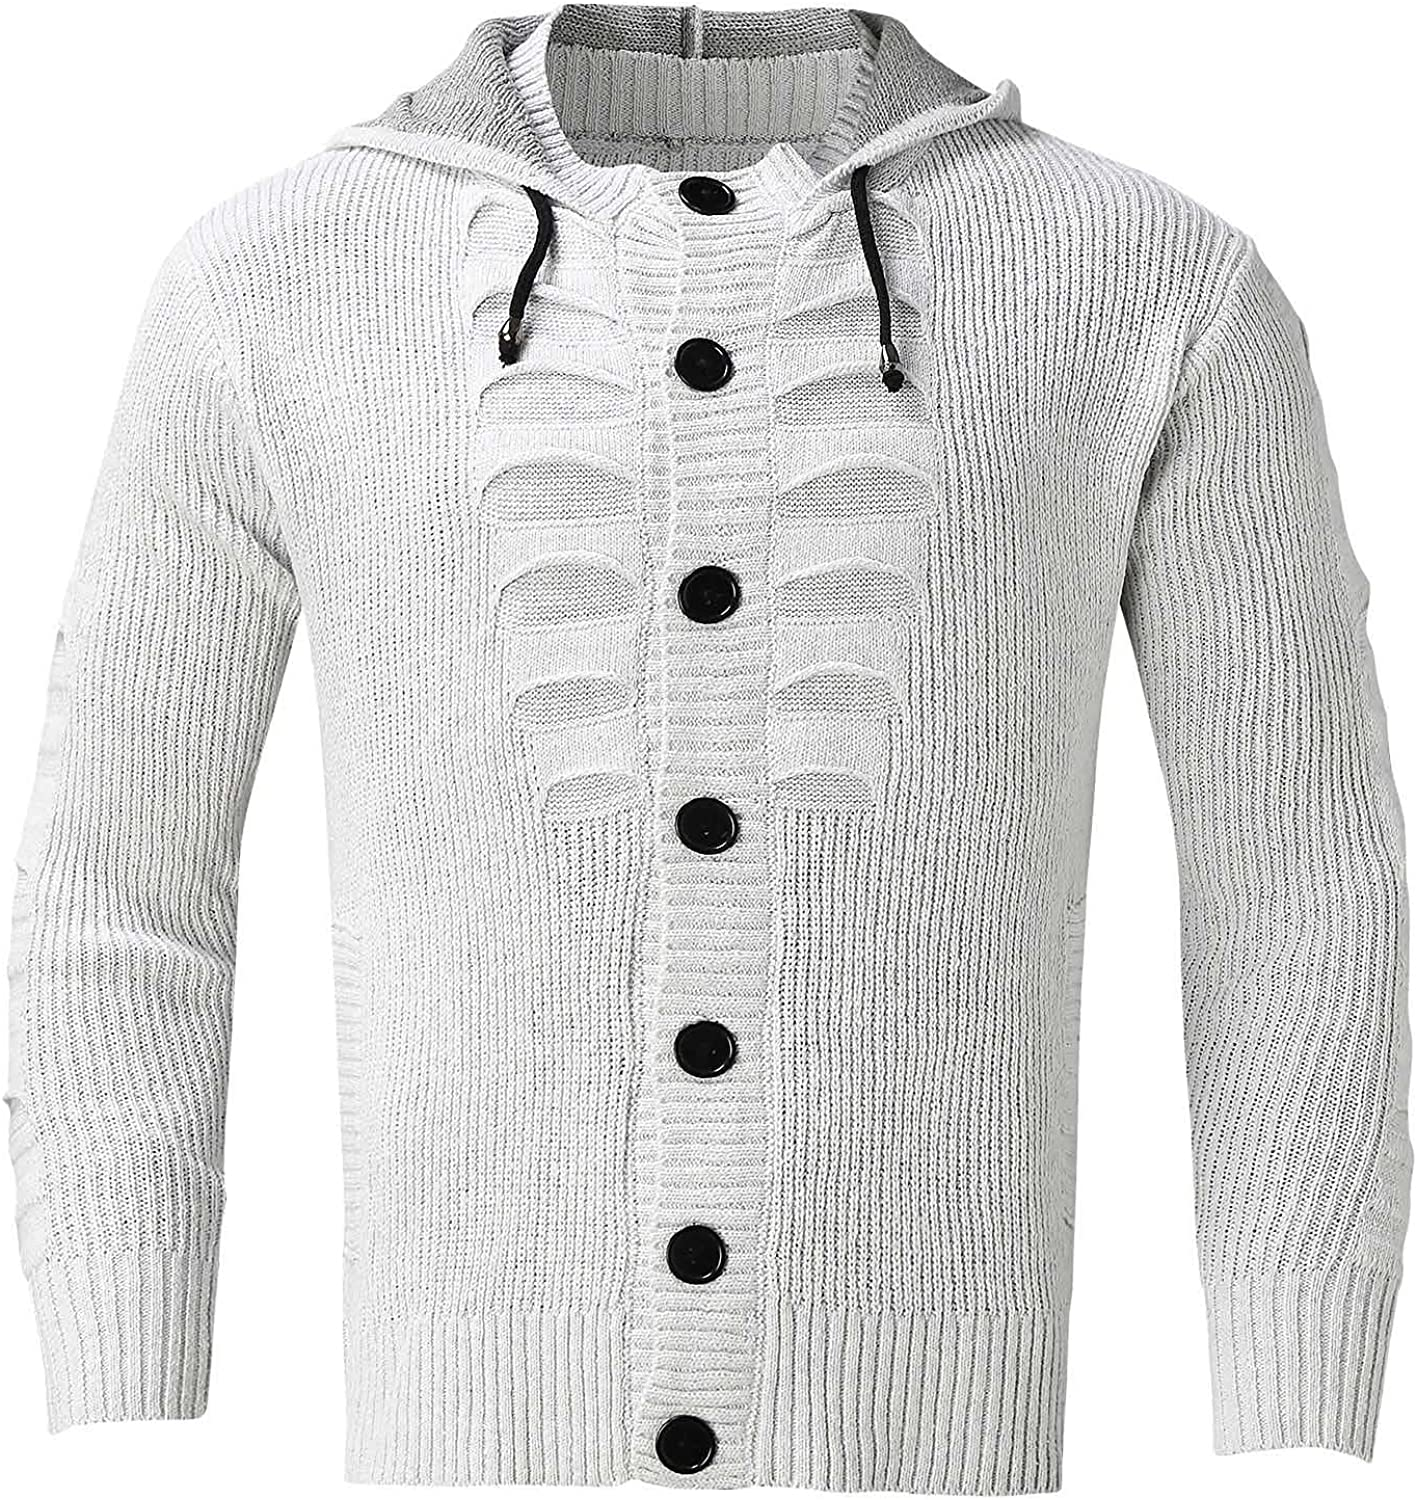 Huangse Men's Autumn Winter Button Down Knit Hoodie Fashion Ripped Jacket Long Sleeve Cardigan Sweaters